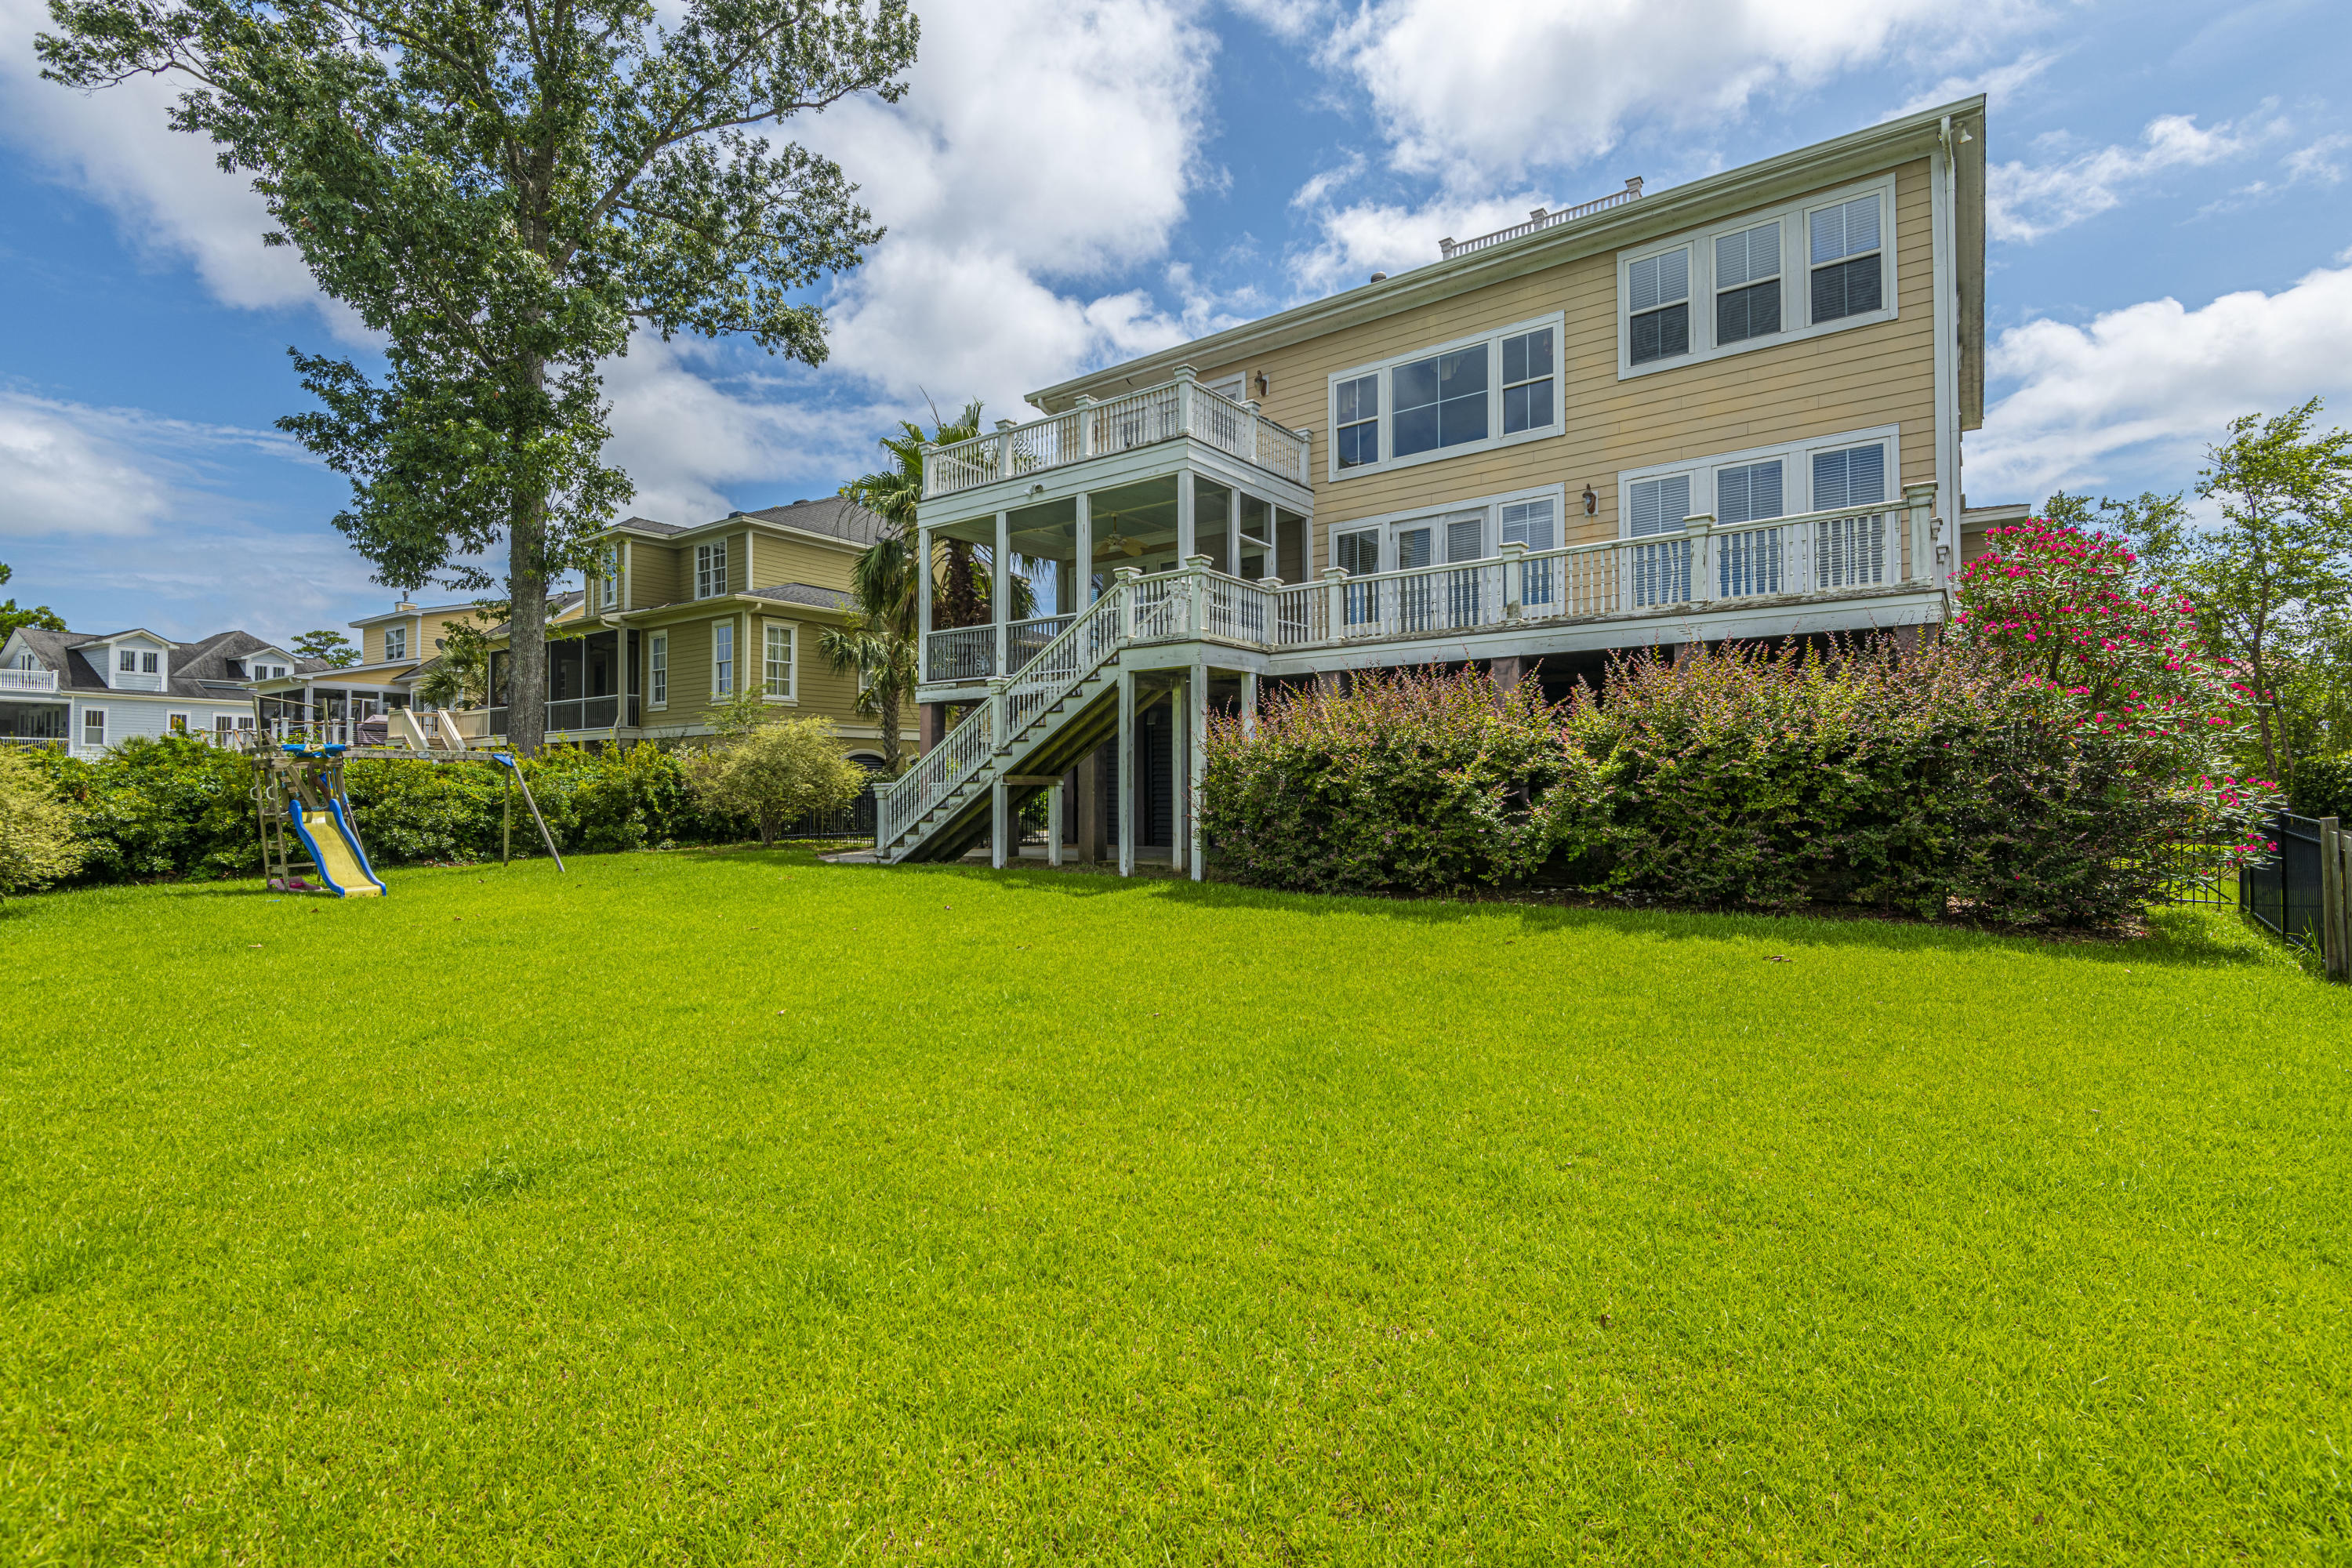 Rivertowne Country Club Homes For Sale - 1593 Rivertowne Country Club, Mount Pleasant, SC - 23